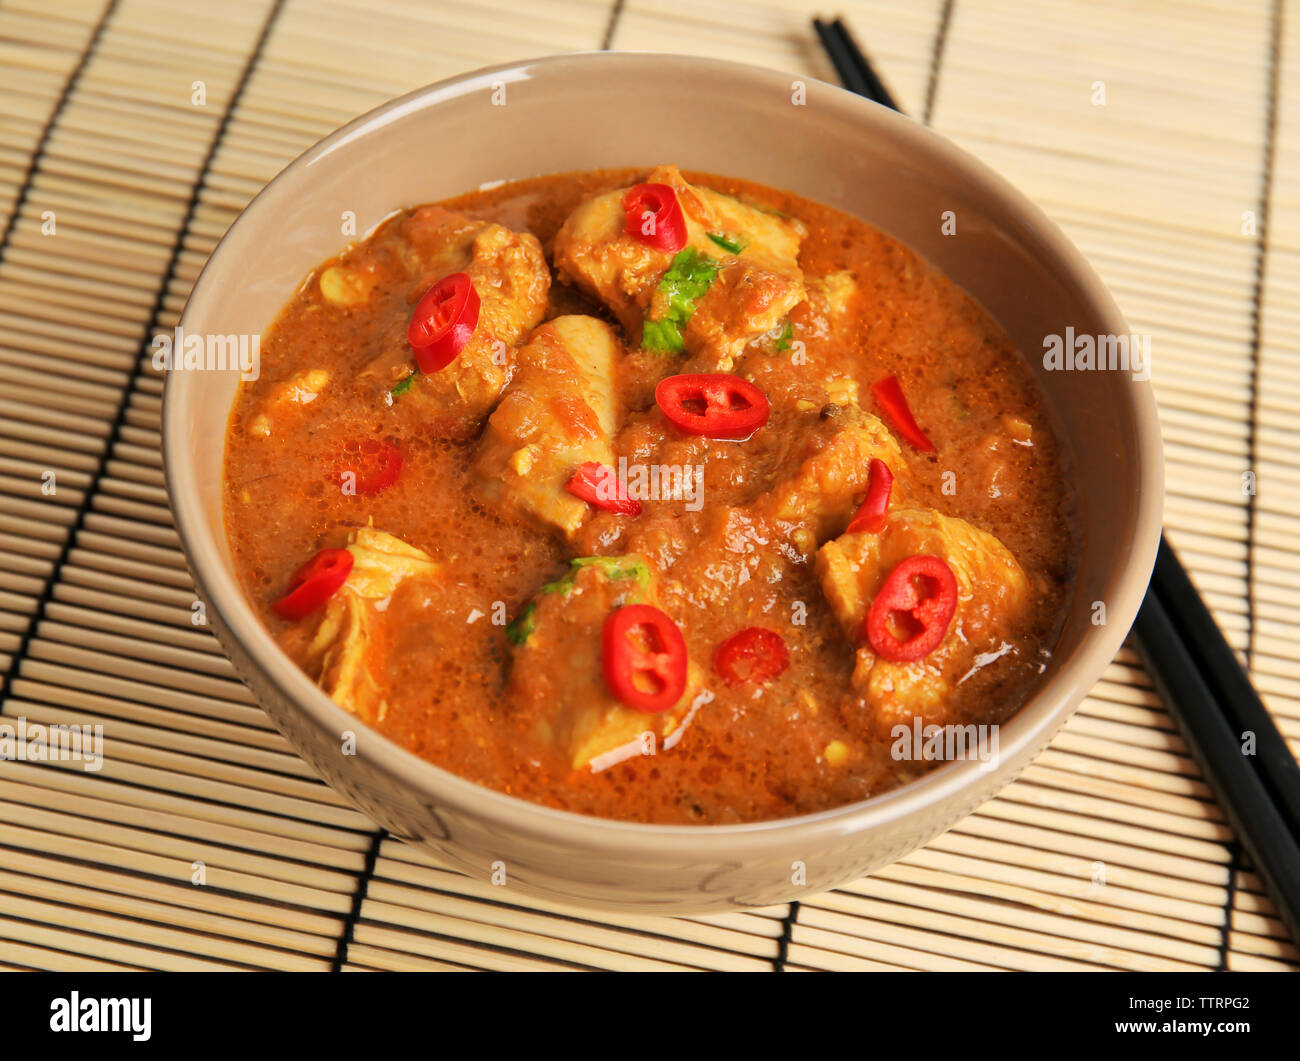 Tasty chicken curry in bowl and chopsticks on bamboo mat - Stock Image